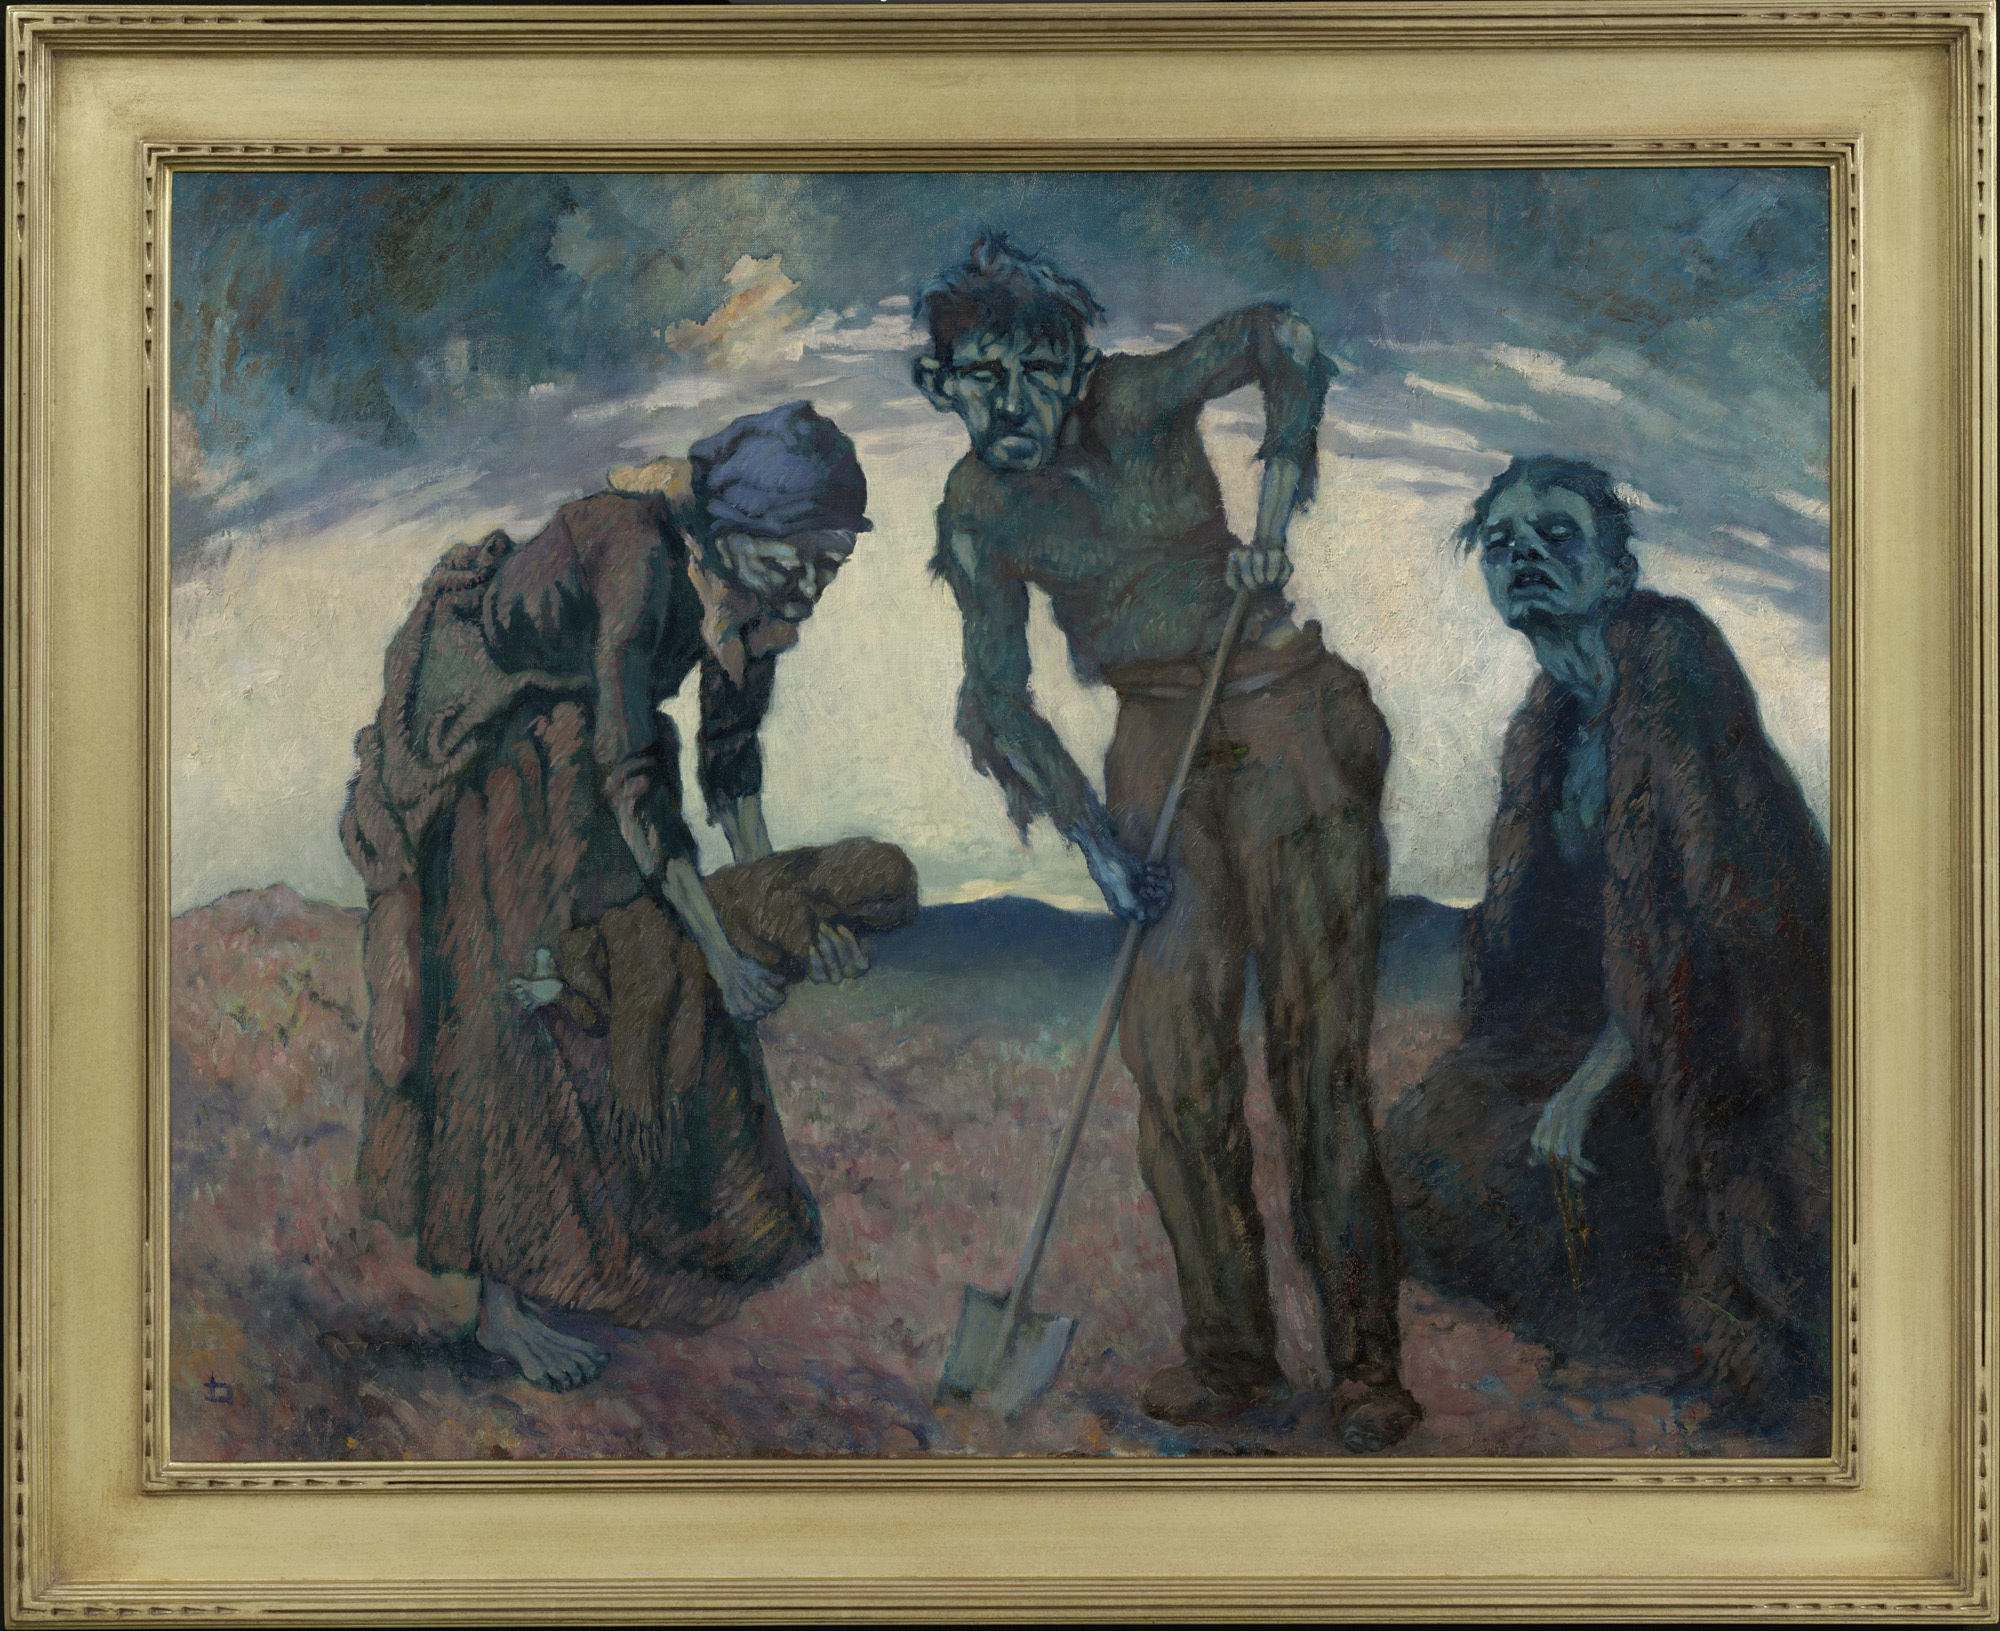 """A painting by Lilian Lucy Davidson titled """"Burying the Child,"""" is among the artwork on display in Ireland's Great Hunger Museum on the campus of Quinnipiac University in Hamden, Conn."""